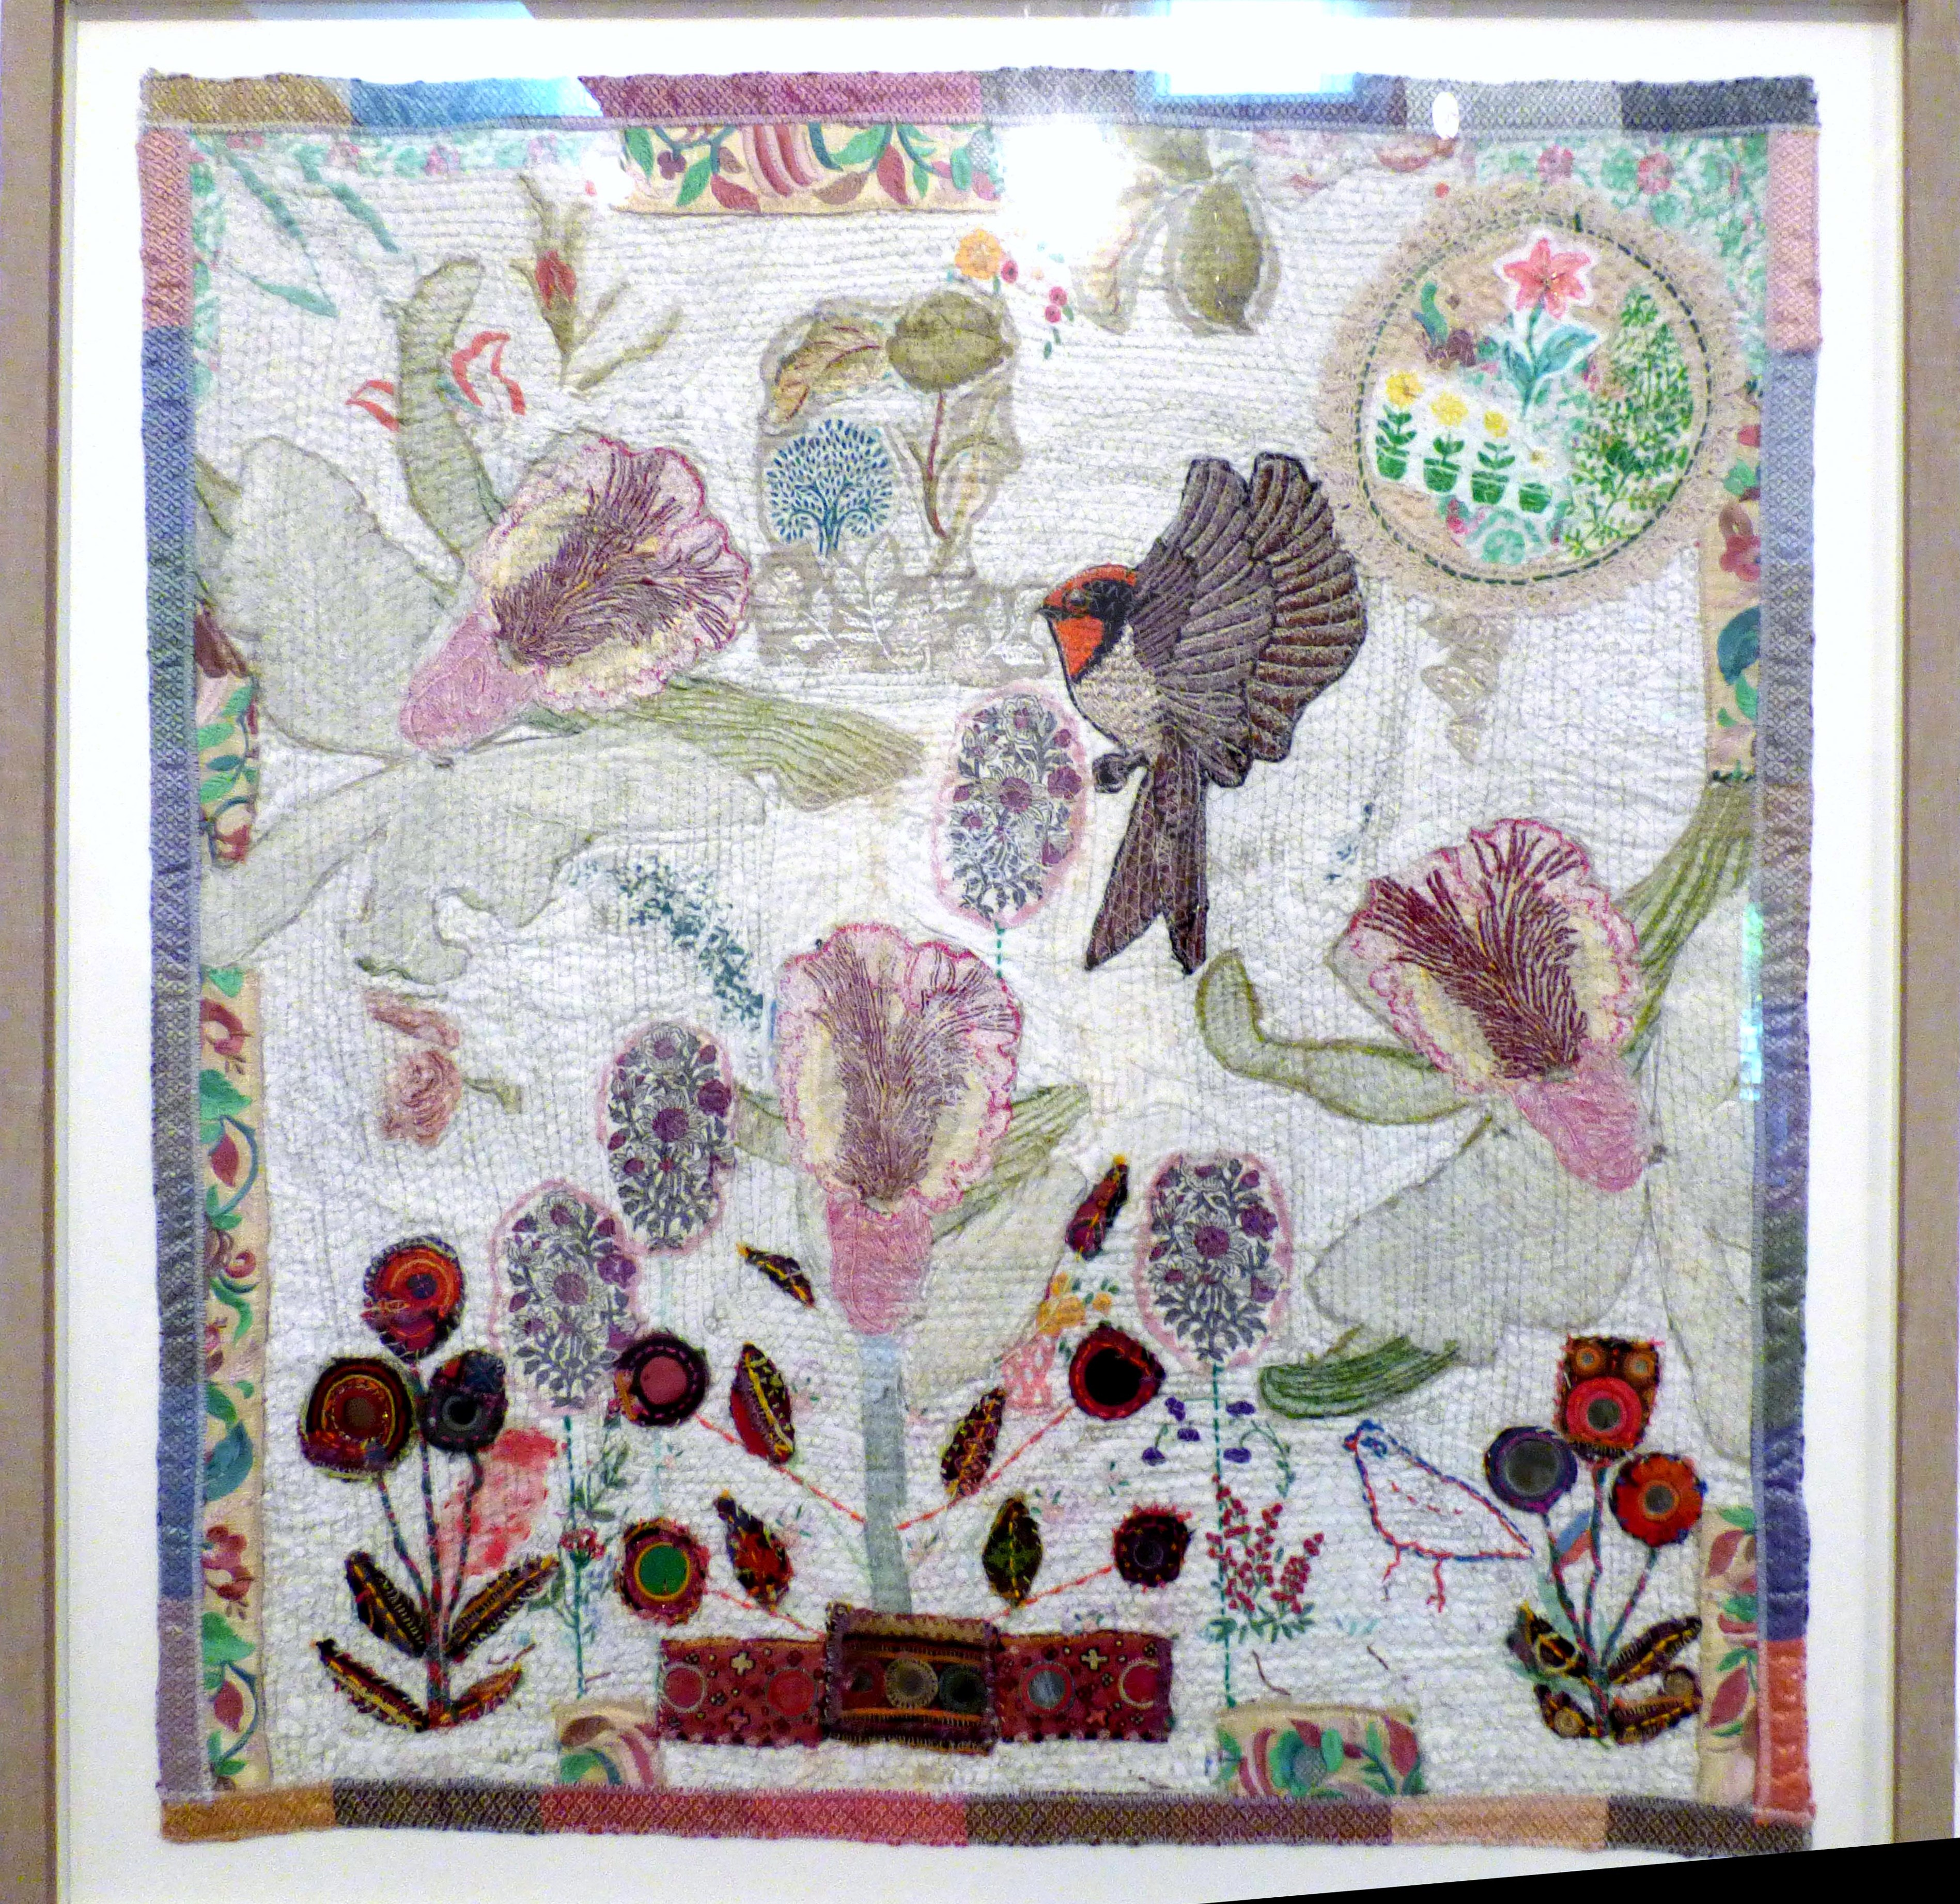 MAHARINI Gardens, mixed media textiles by Anne Kelly, Ruthin Craft Gallery, July 2021